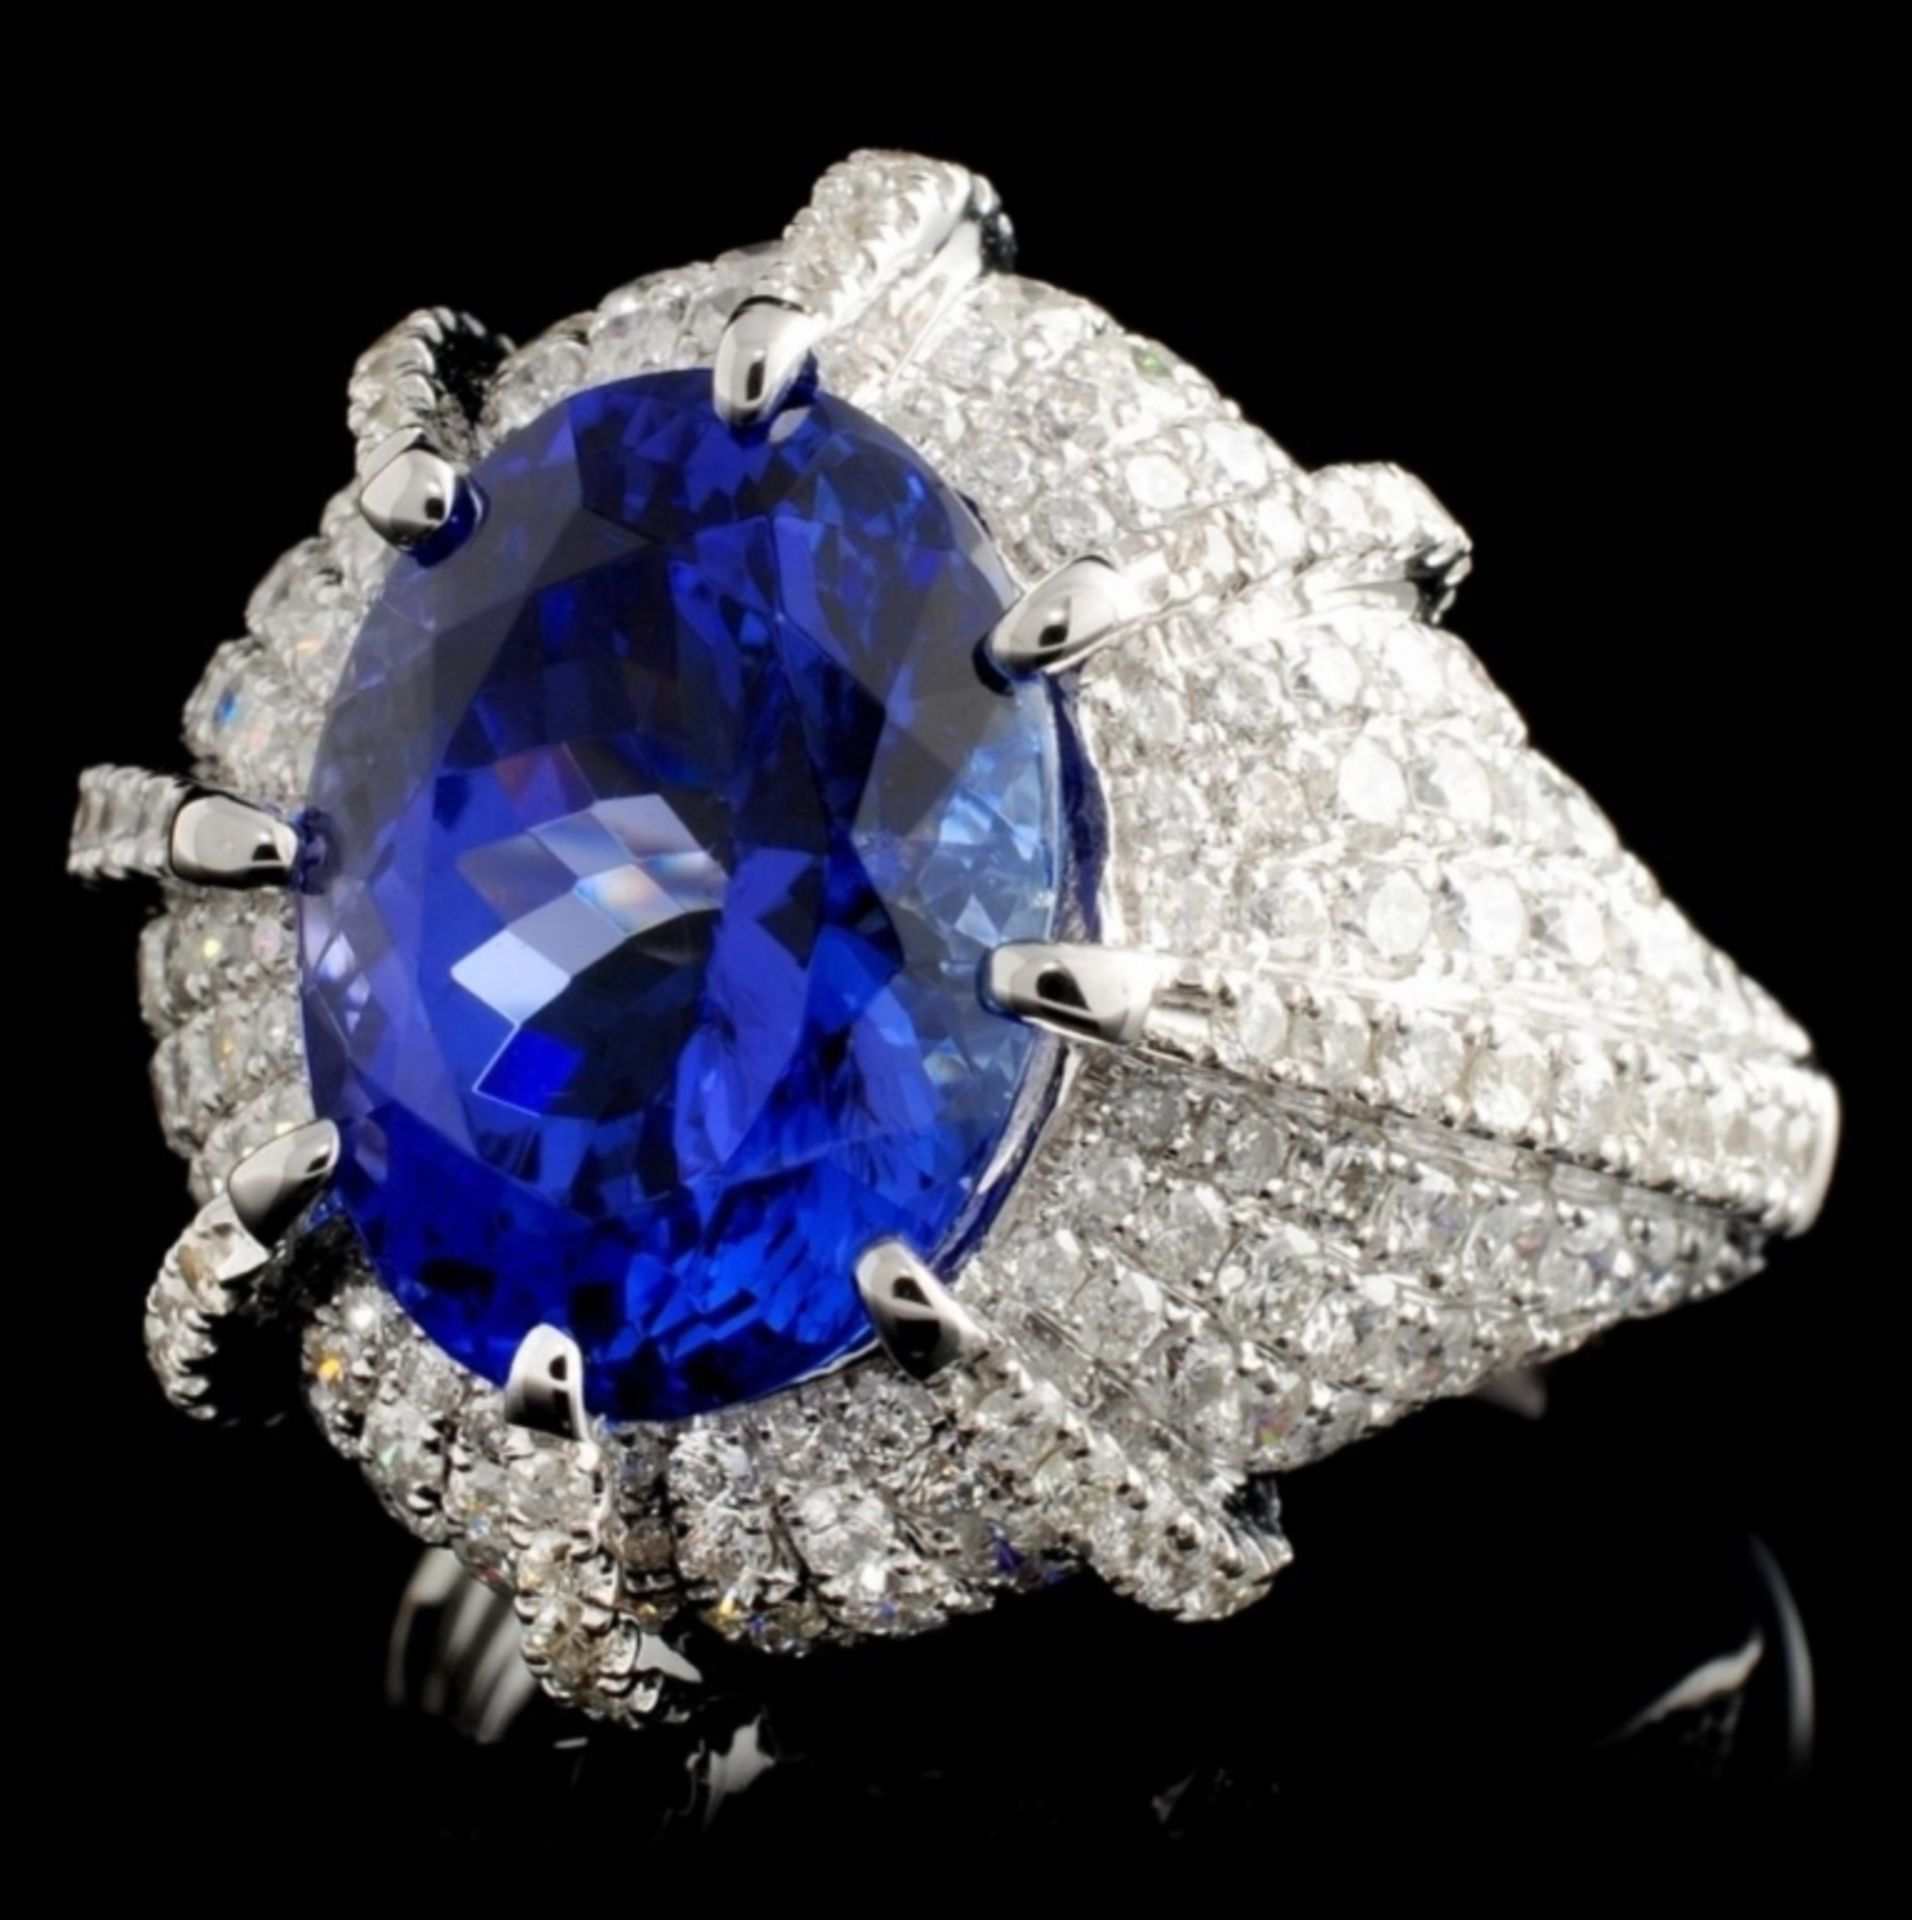 18K White Gold 5.49ct Tanzanite & 1.96ct Diamond R - Image 2 of 4